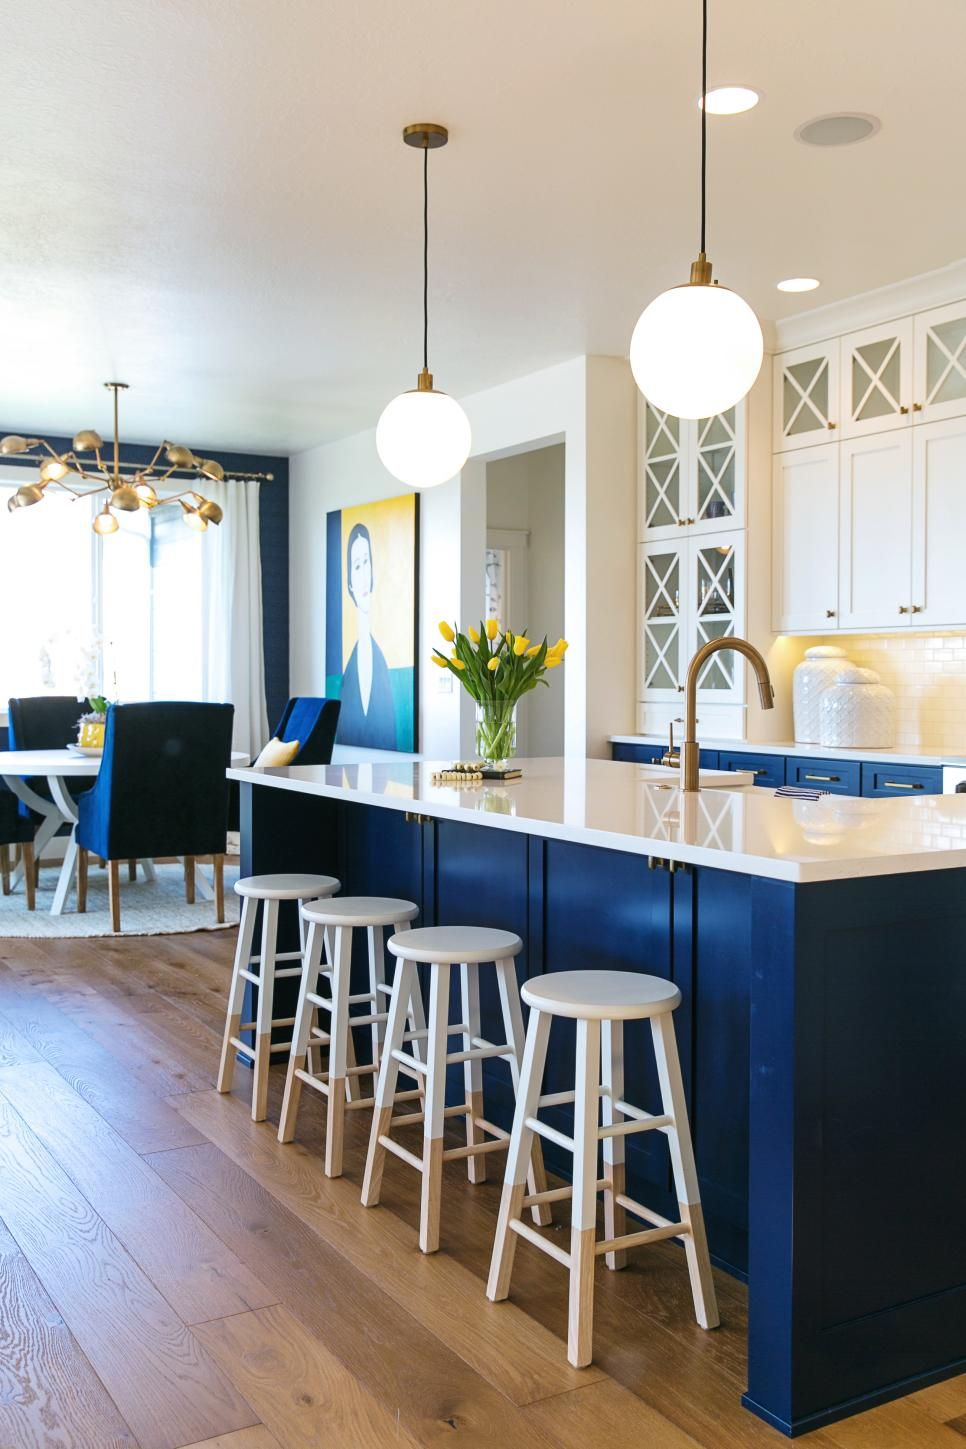 Blue And White Kitchen With Kitchen Island Stools And Kitchen